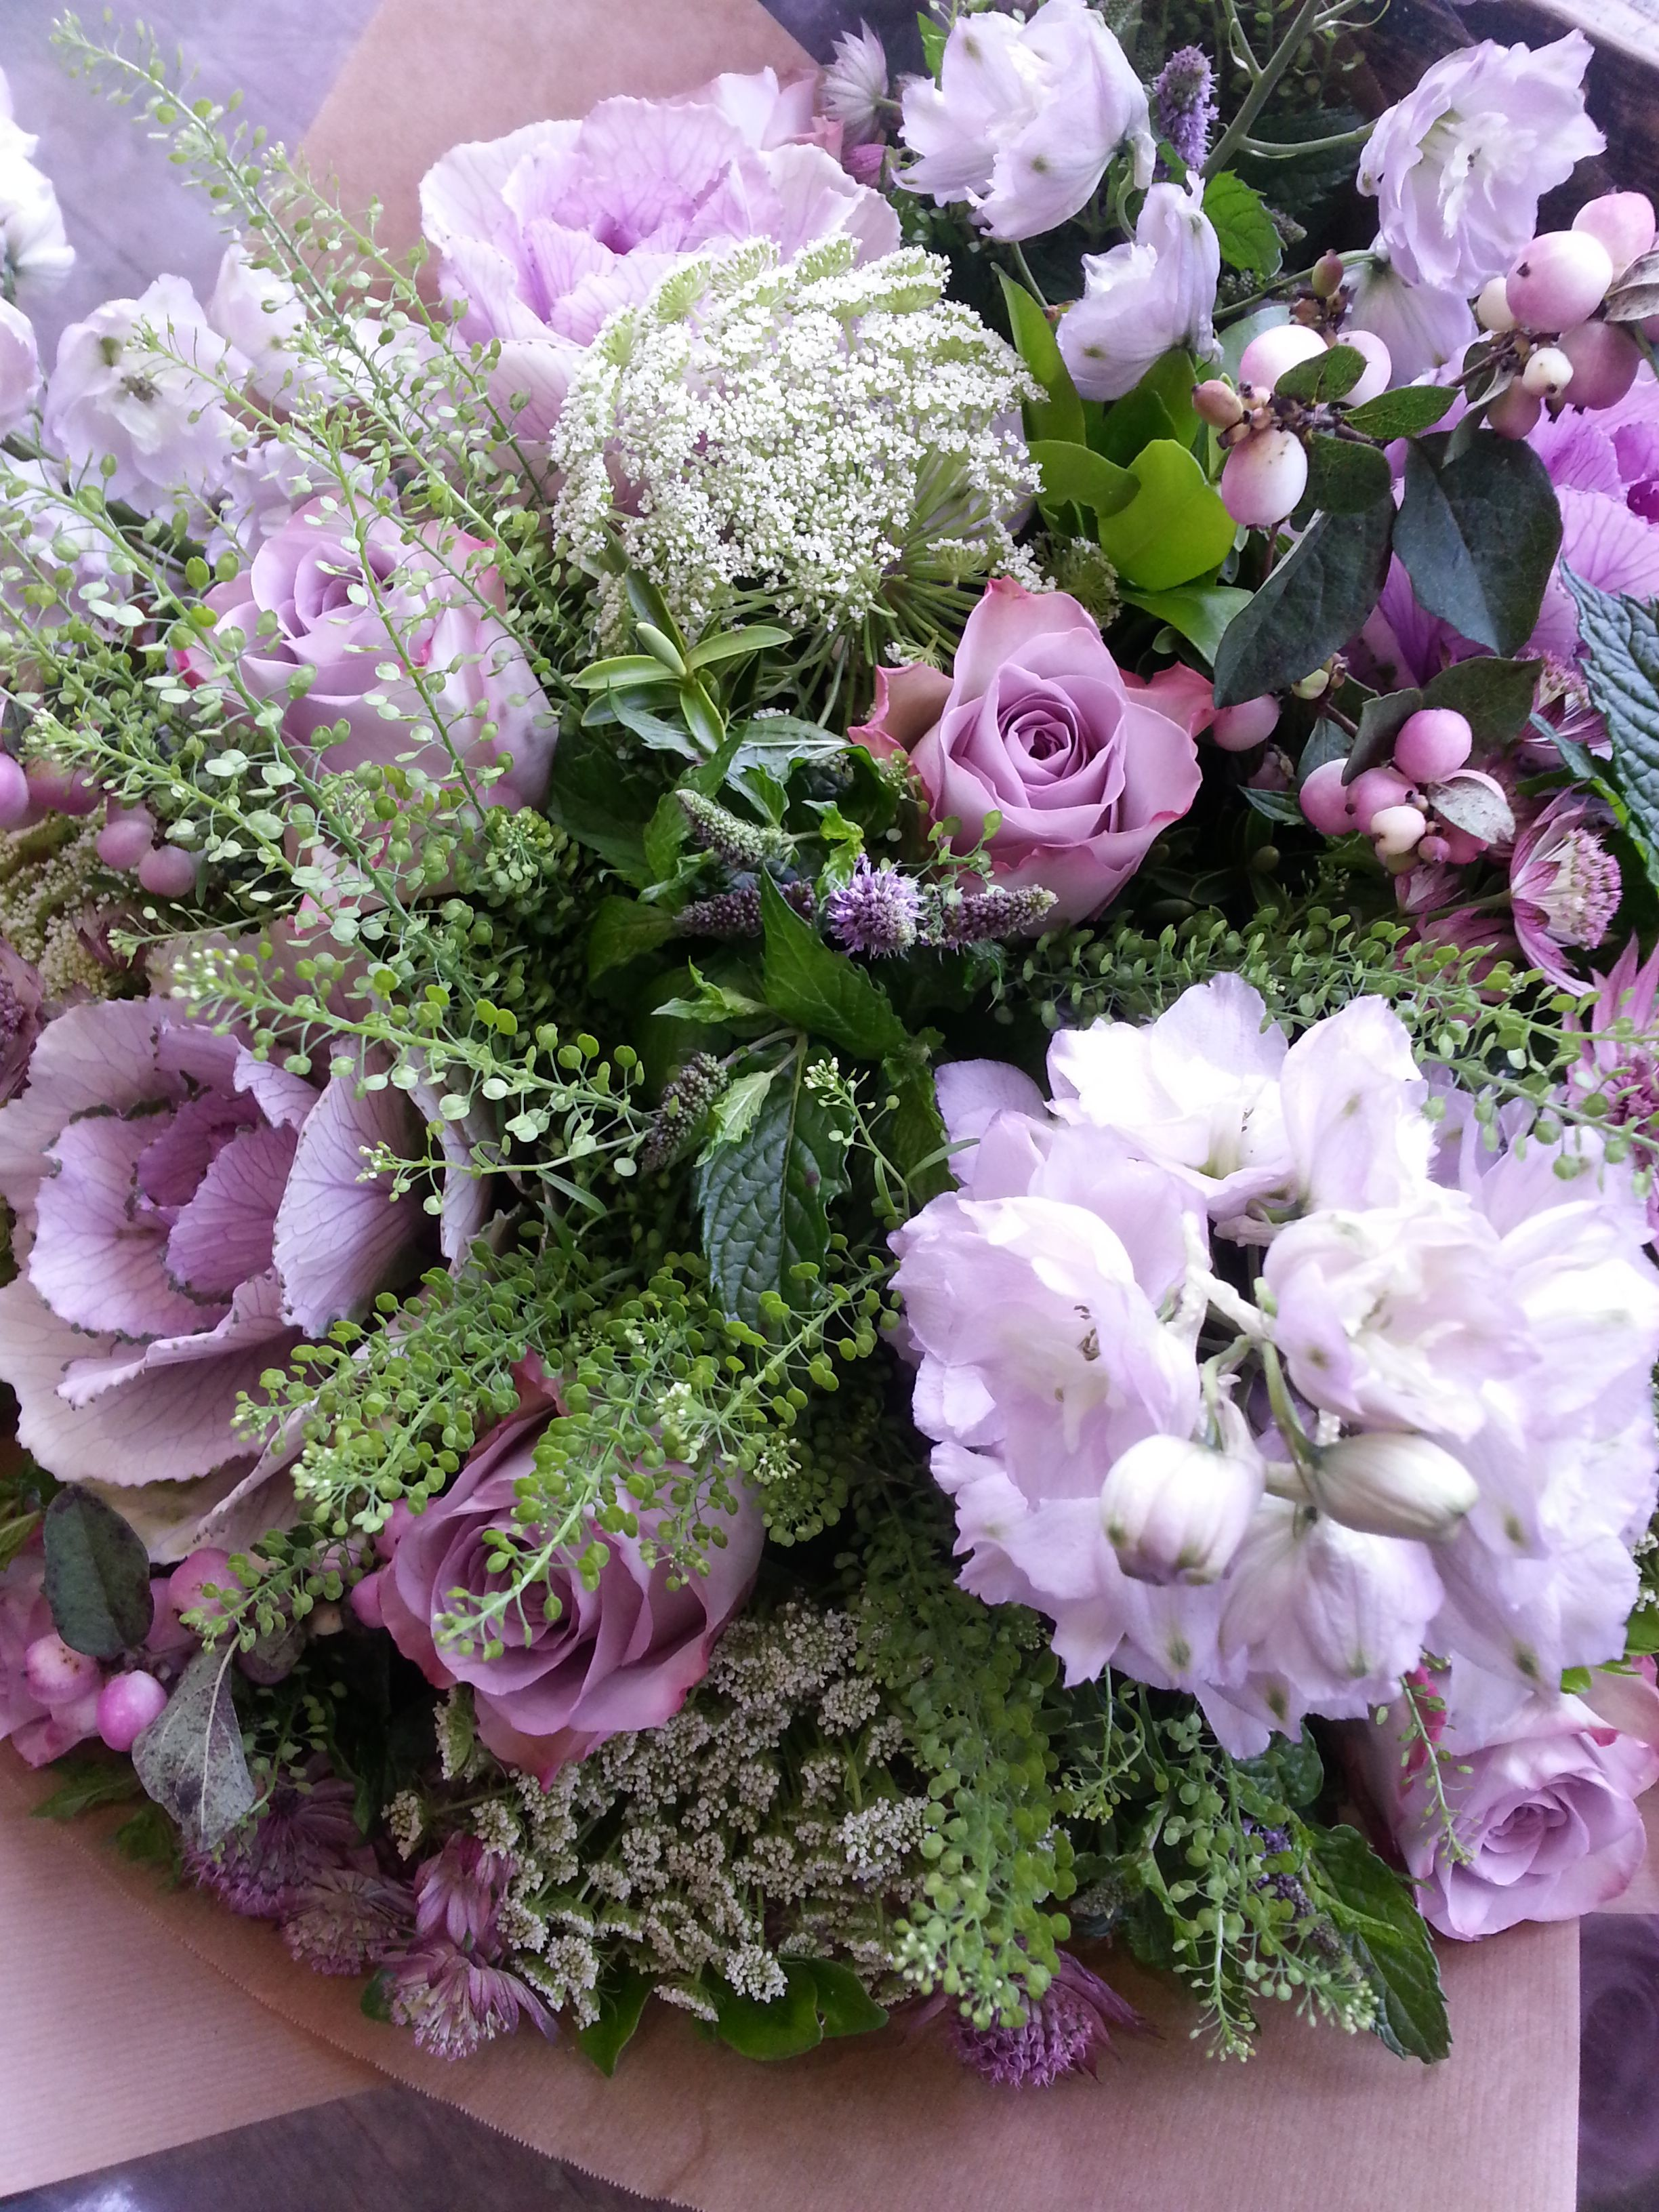 cabbages, memory lane roses, delphiniums, ammi and snowberries made